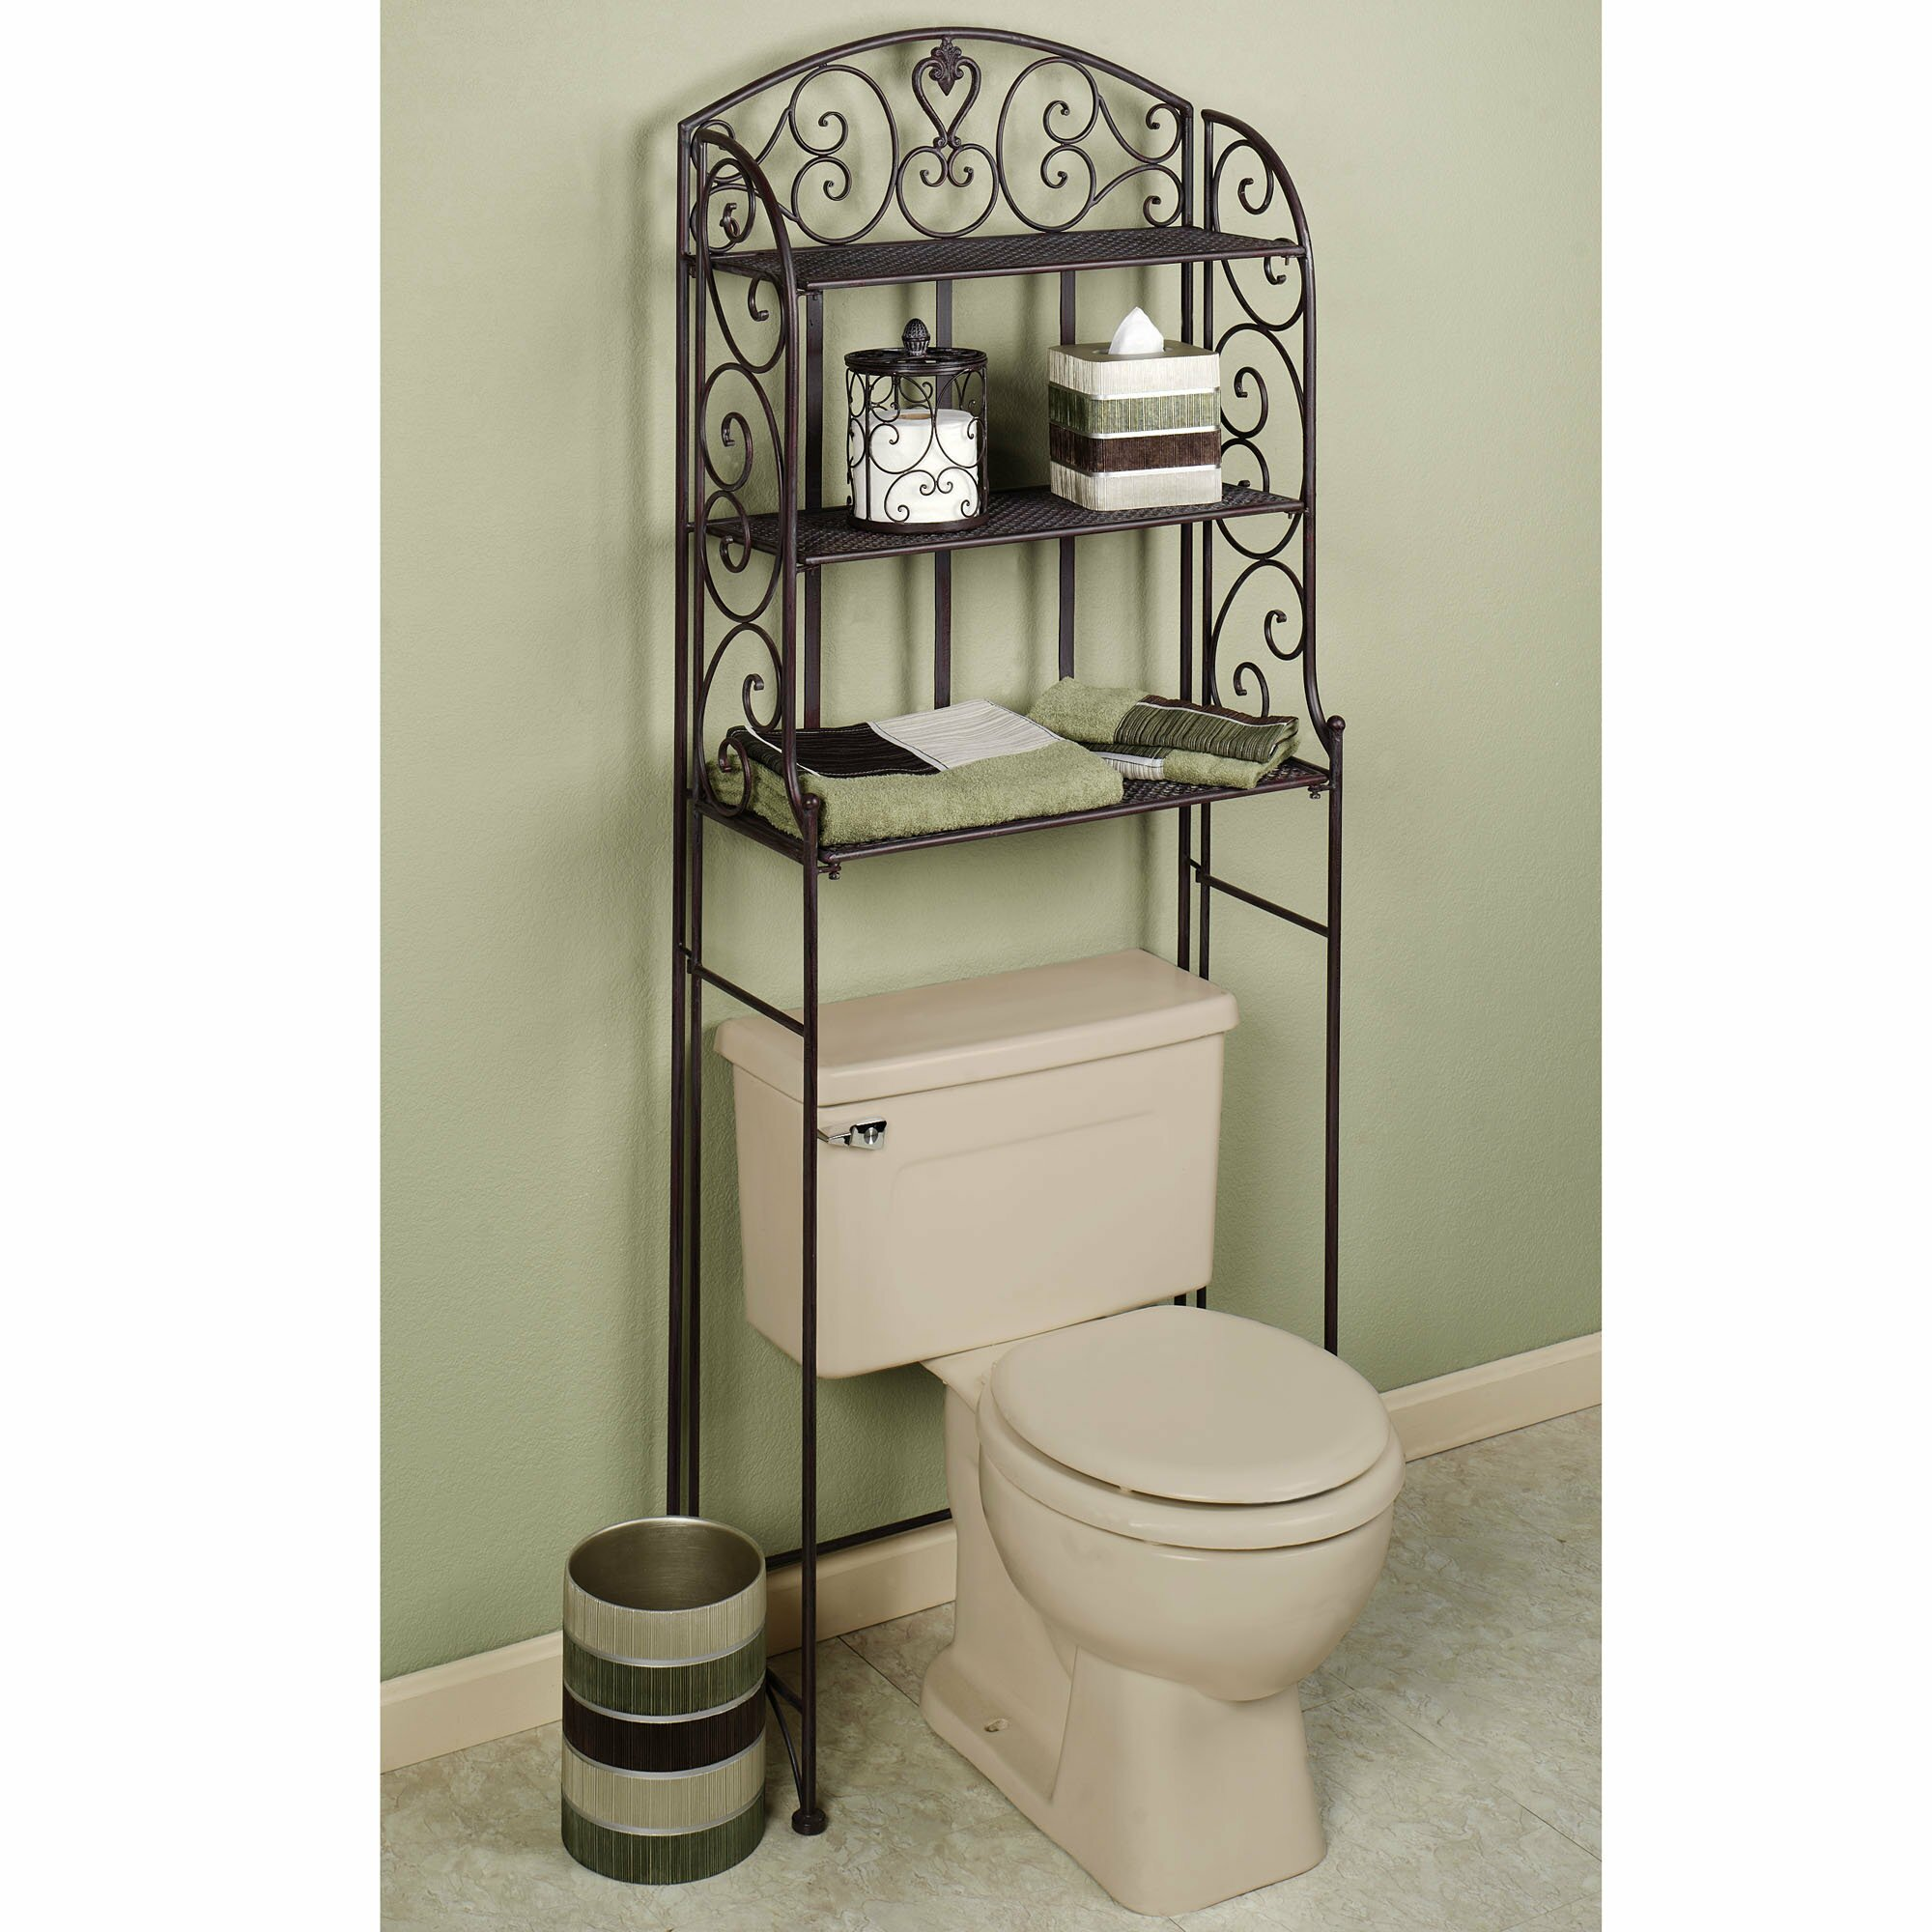 bathroom metal etagere bathroom toilet etagere space saver toilet cabinet. Black Bedroom Furniture Sets. Home Design Ideas